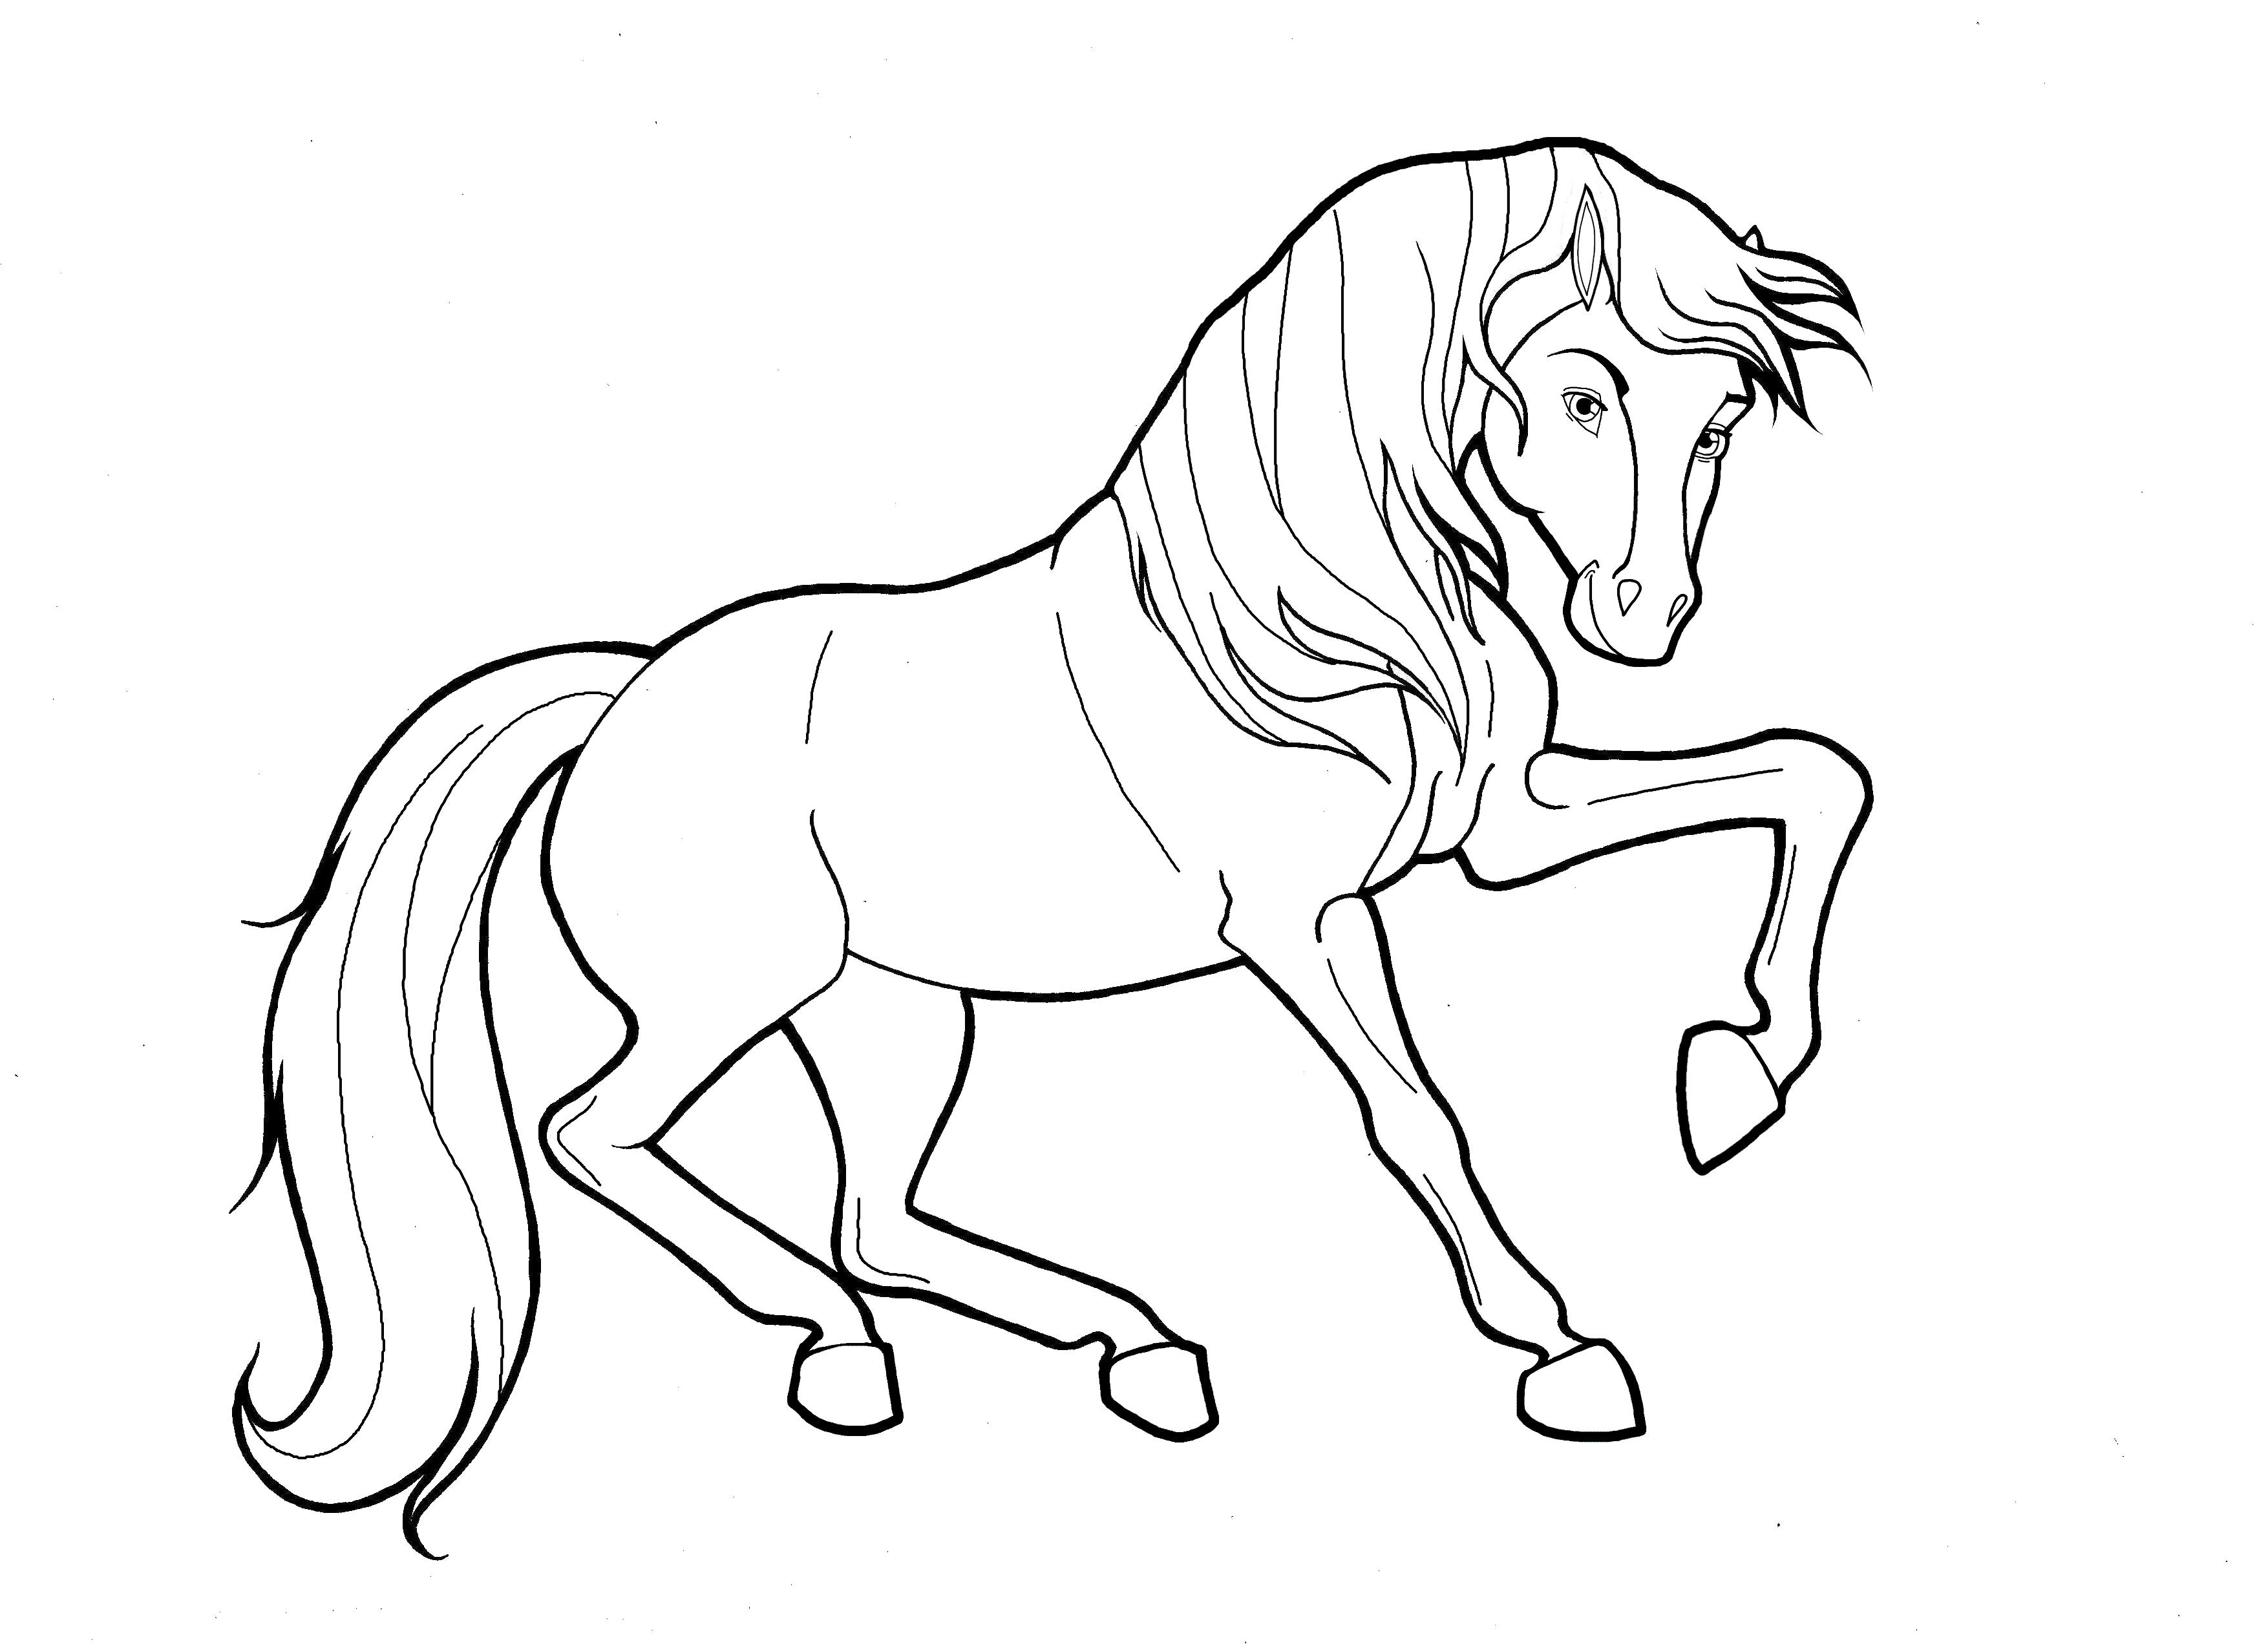 horse pictures to color horse coloring pages for kids coloring pages for kids horse pictures to color